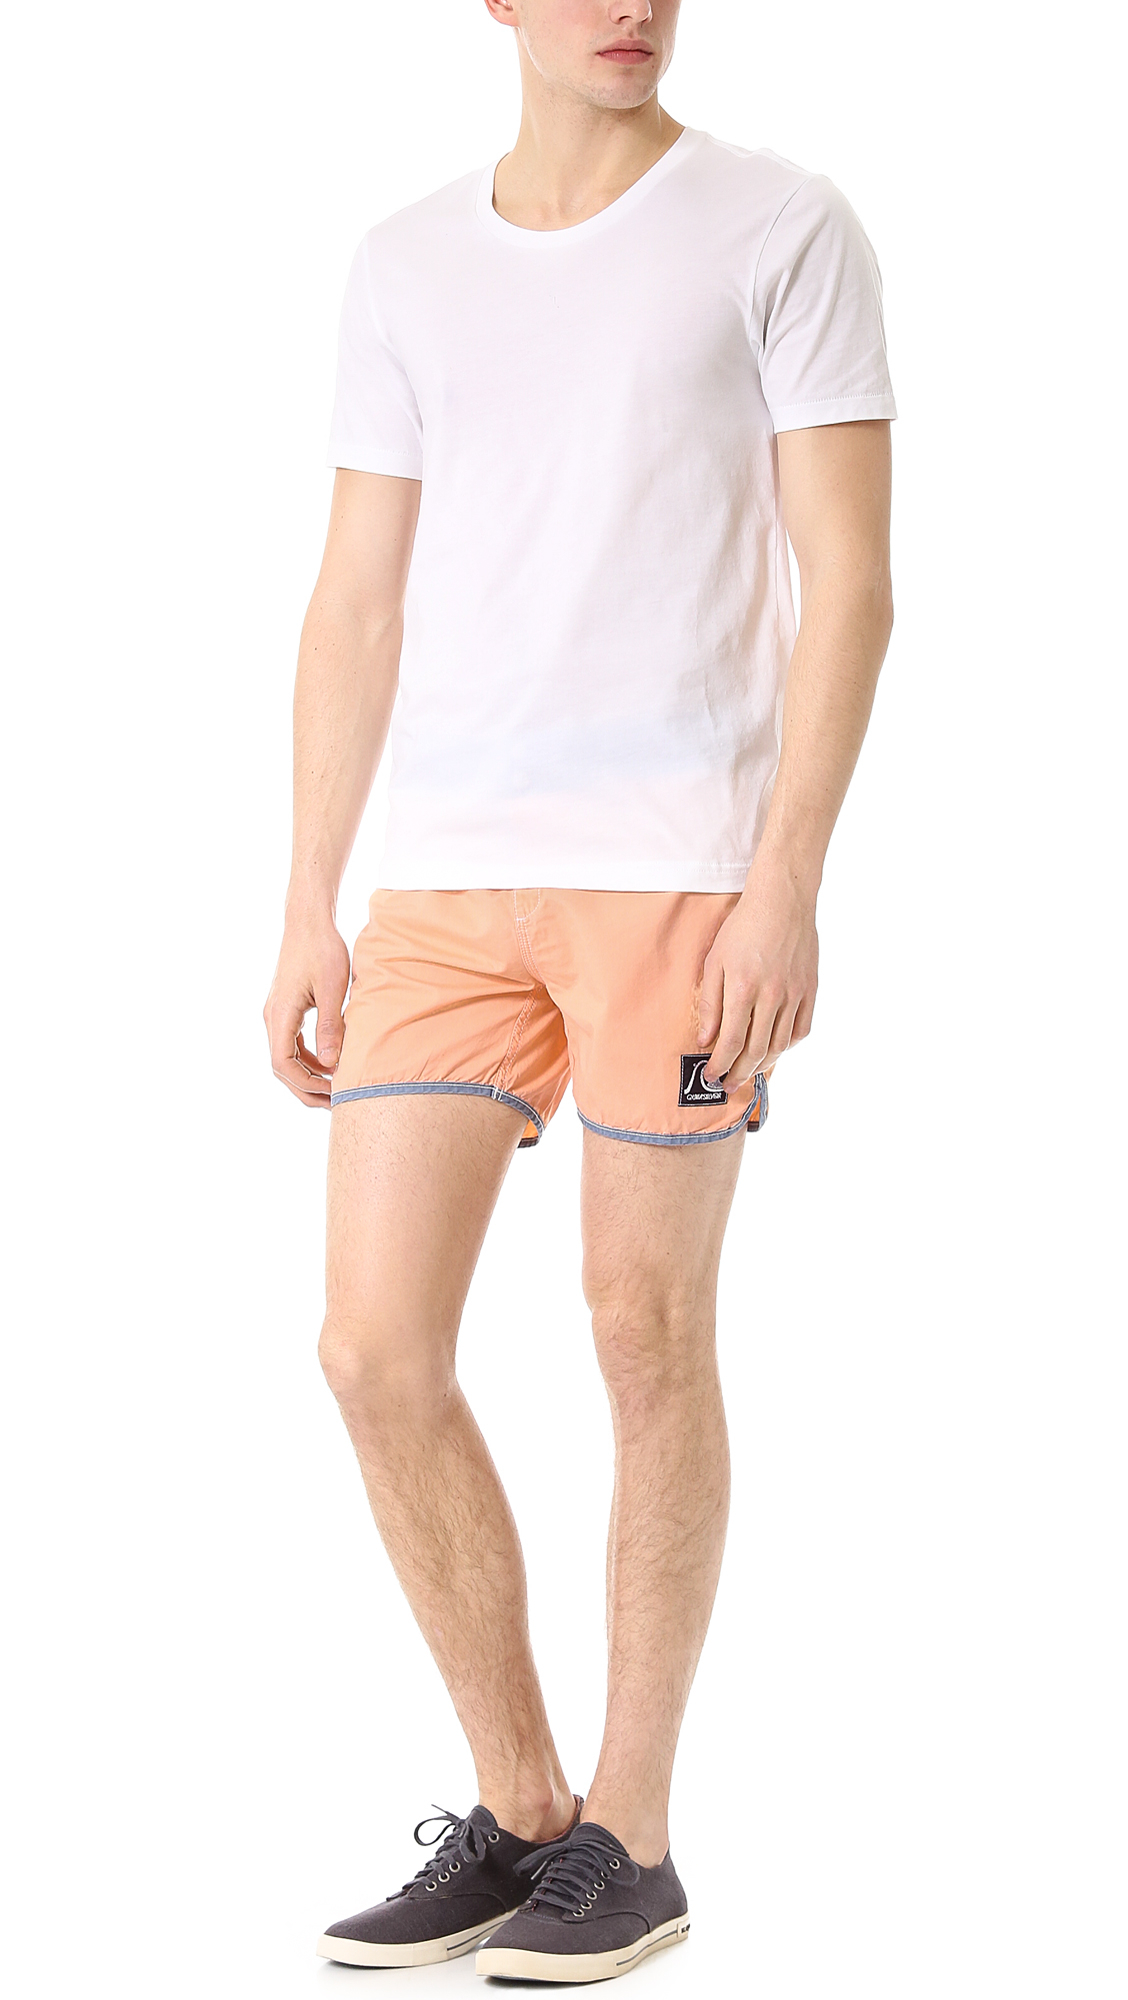 f3e04d999a Quiksilver Scallop 15 Board Shorts in Pink for Men - Lyst